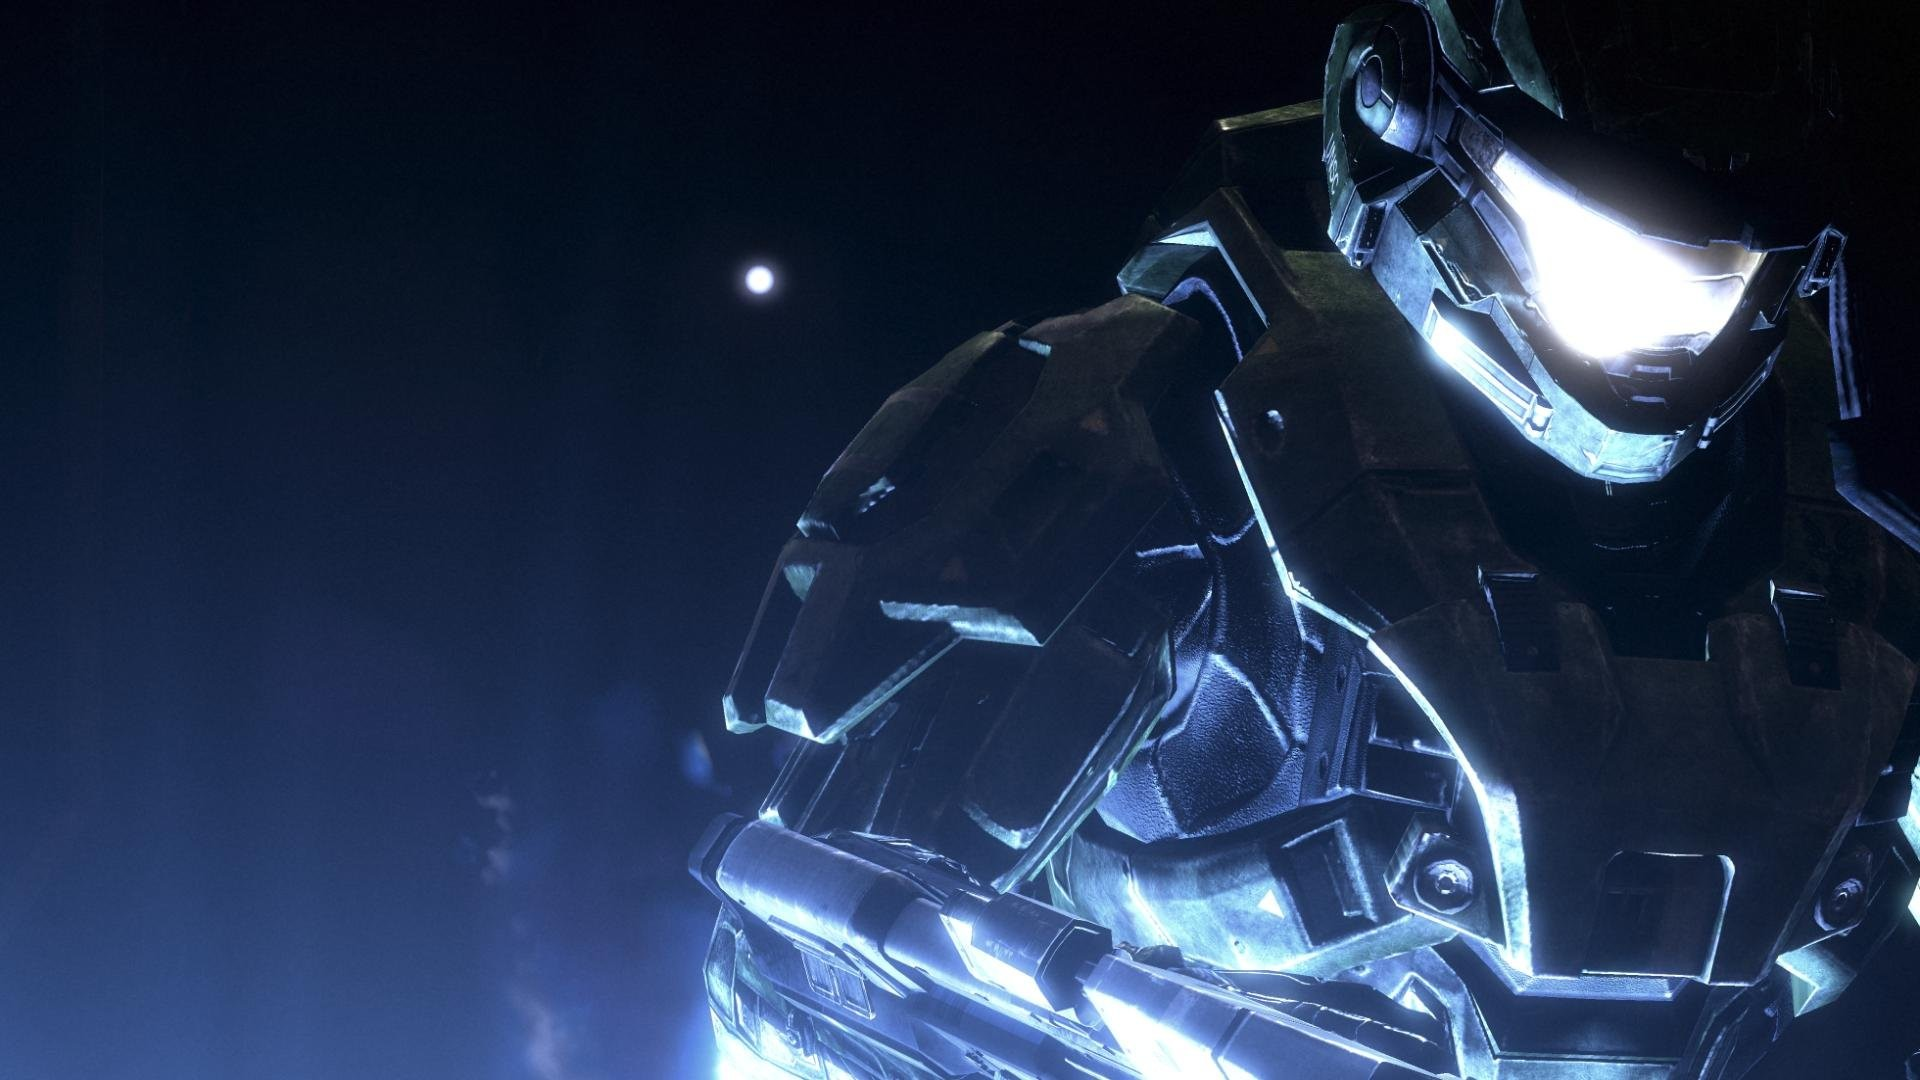 1920x1080 ... video games futuristic halo master chief wallpaper  ...